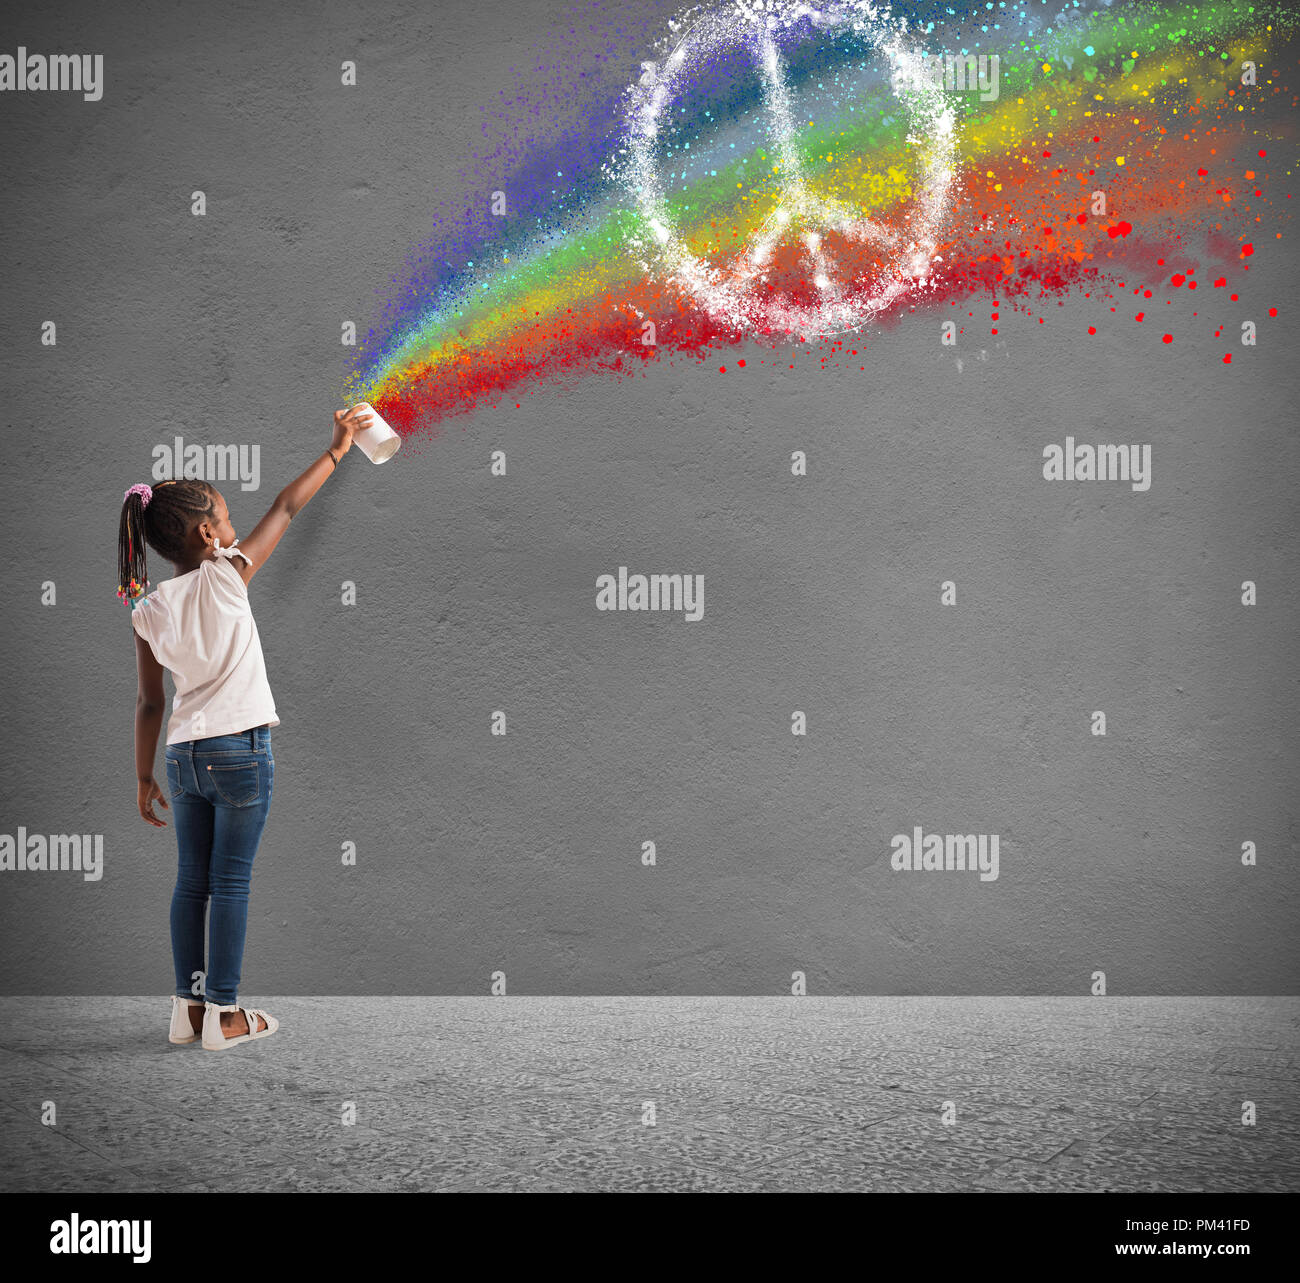 Child draws with spray the color of peace - Stock Image